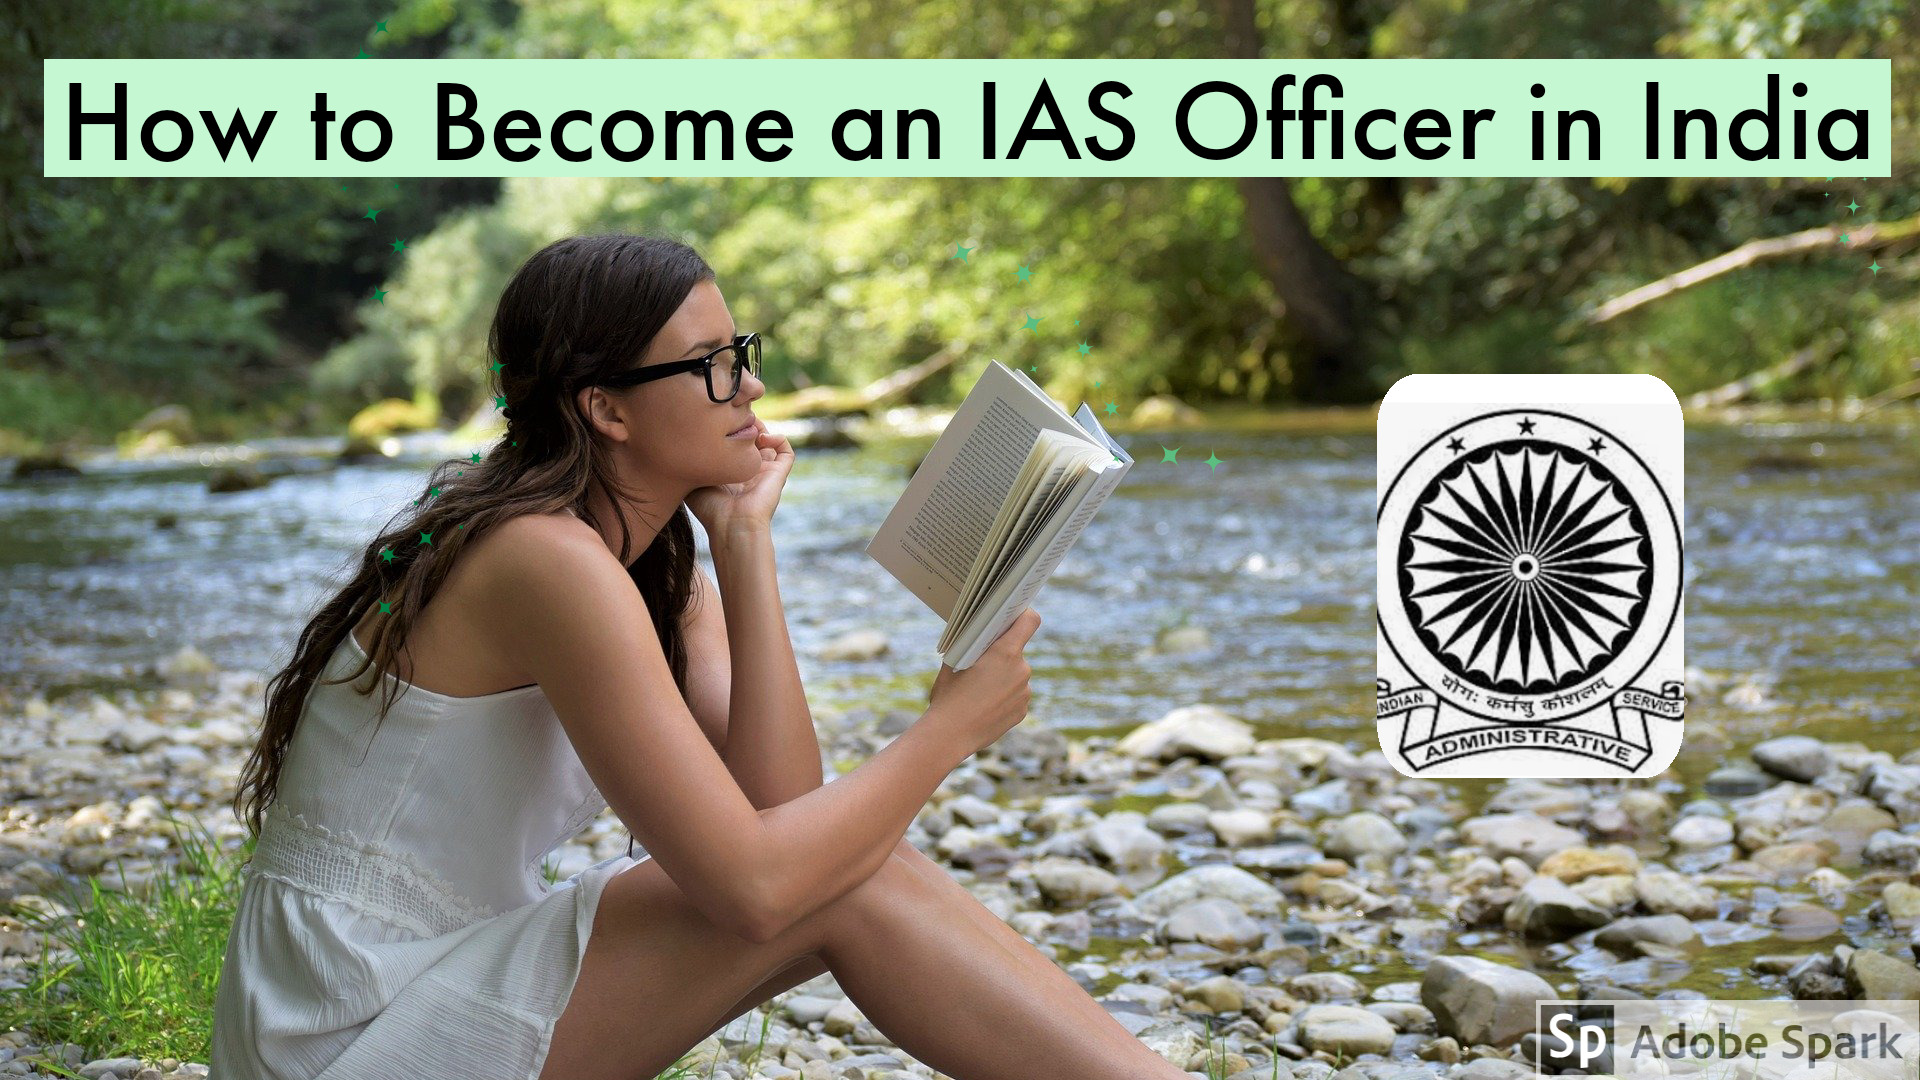 How to Become an IAS Officer in India